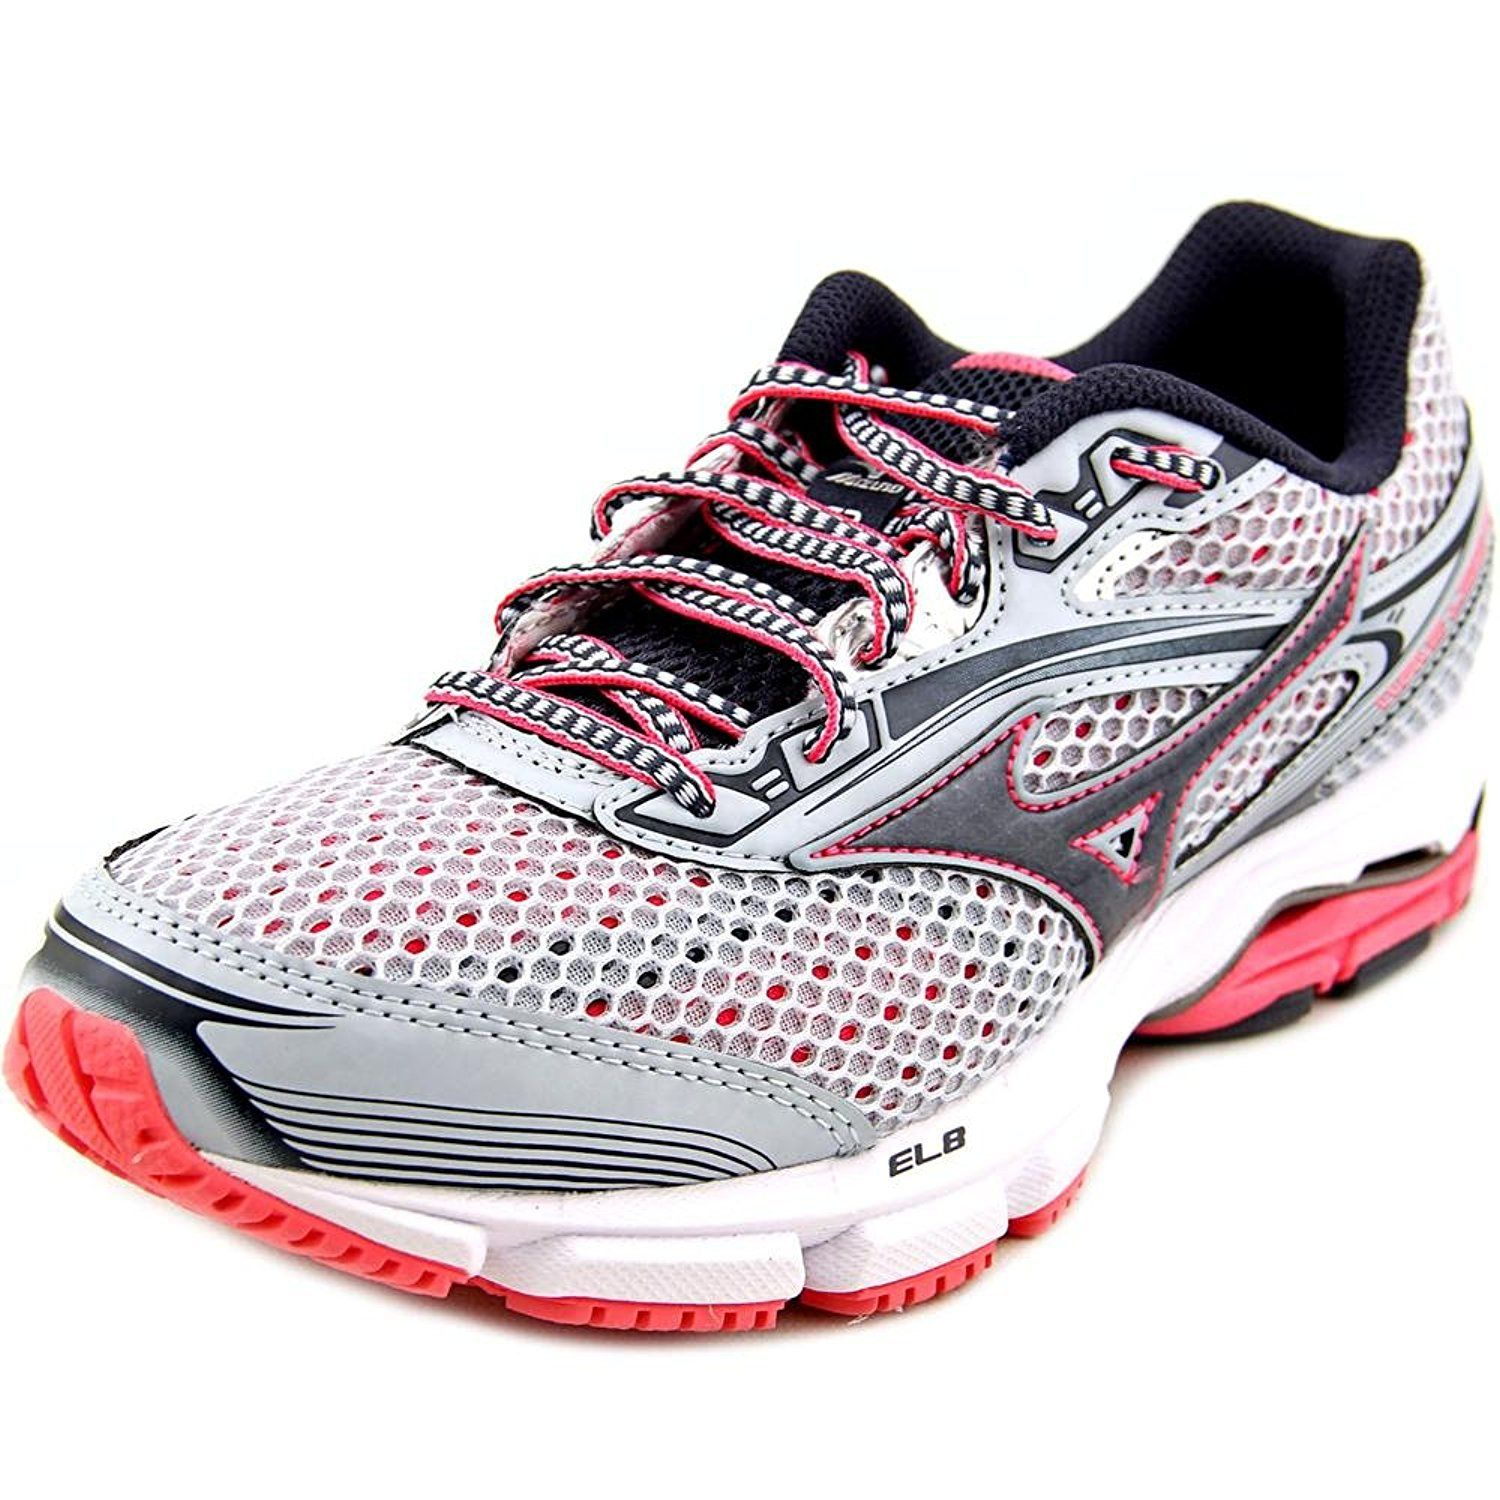 sale retailer 7eb7a 9f6d6 Mizuno Women s Wave Legend 3, Pearl Blue, 7.5 B US   For more information,  visit now   Running shoes